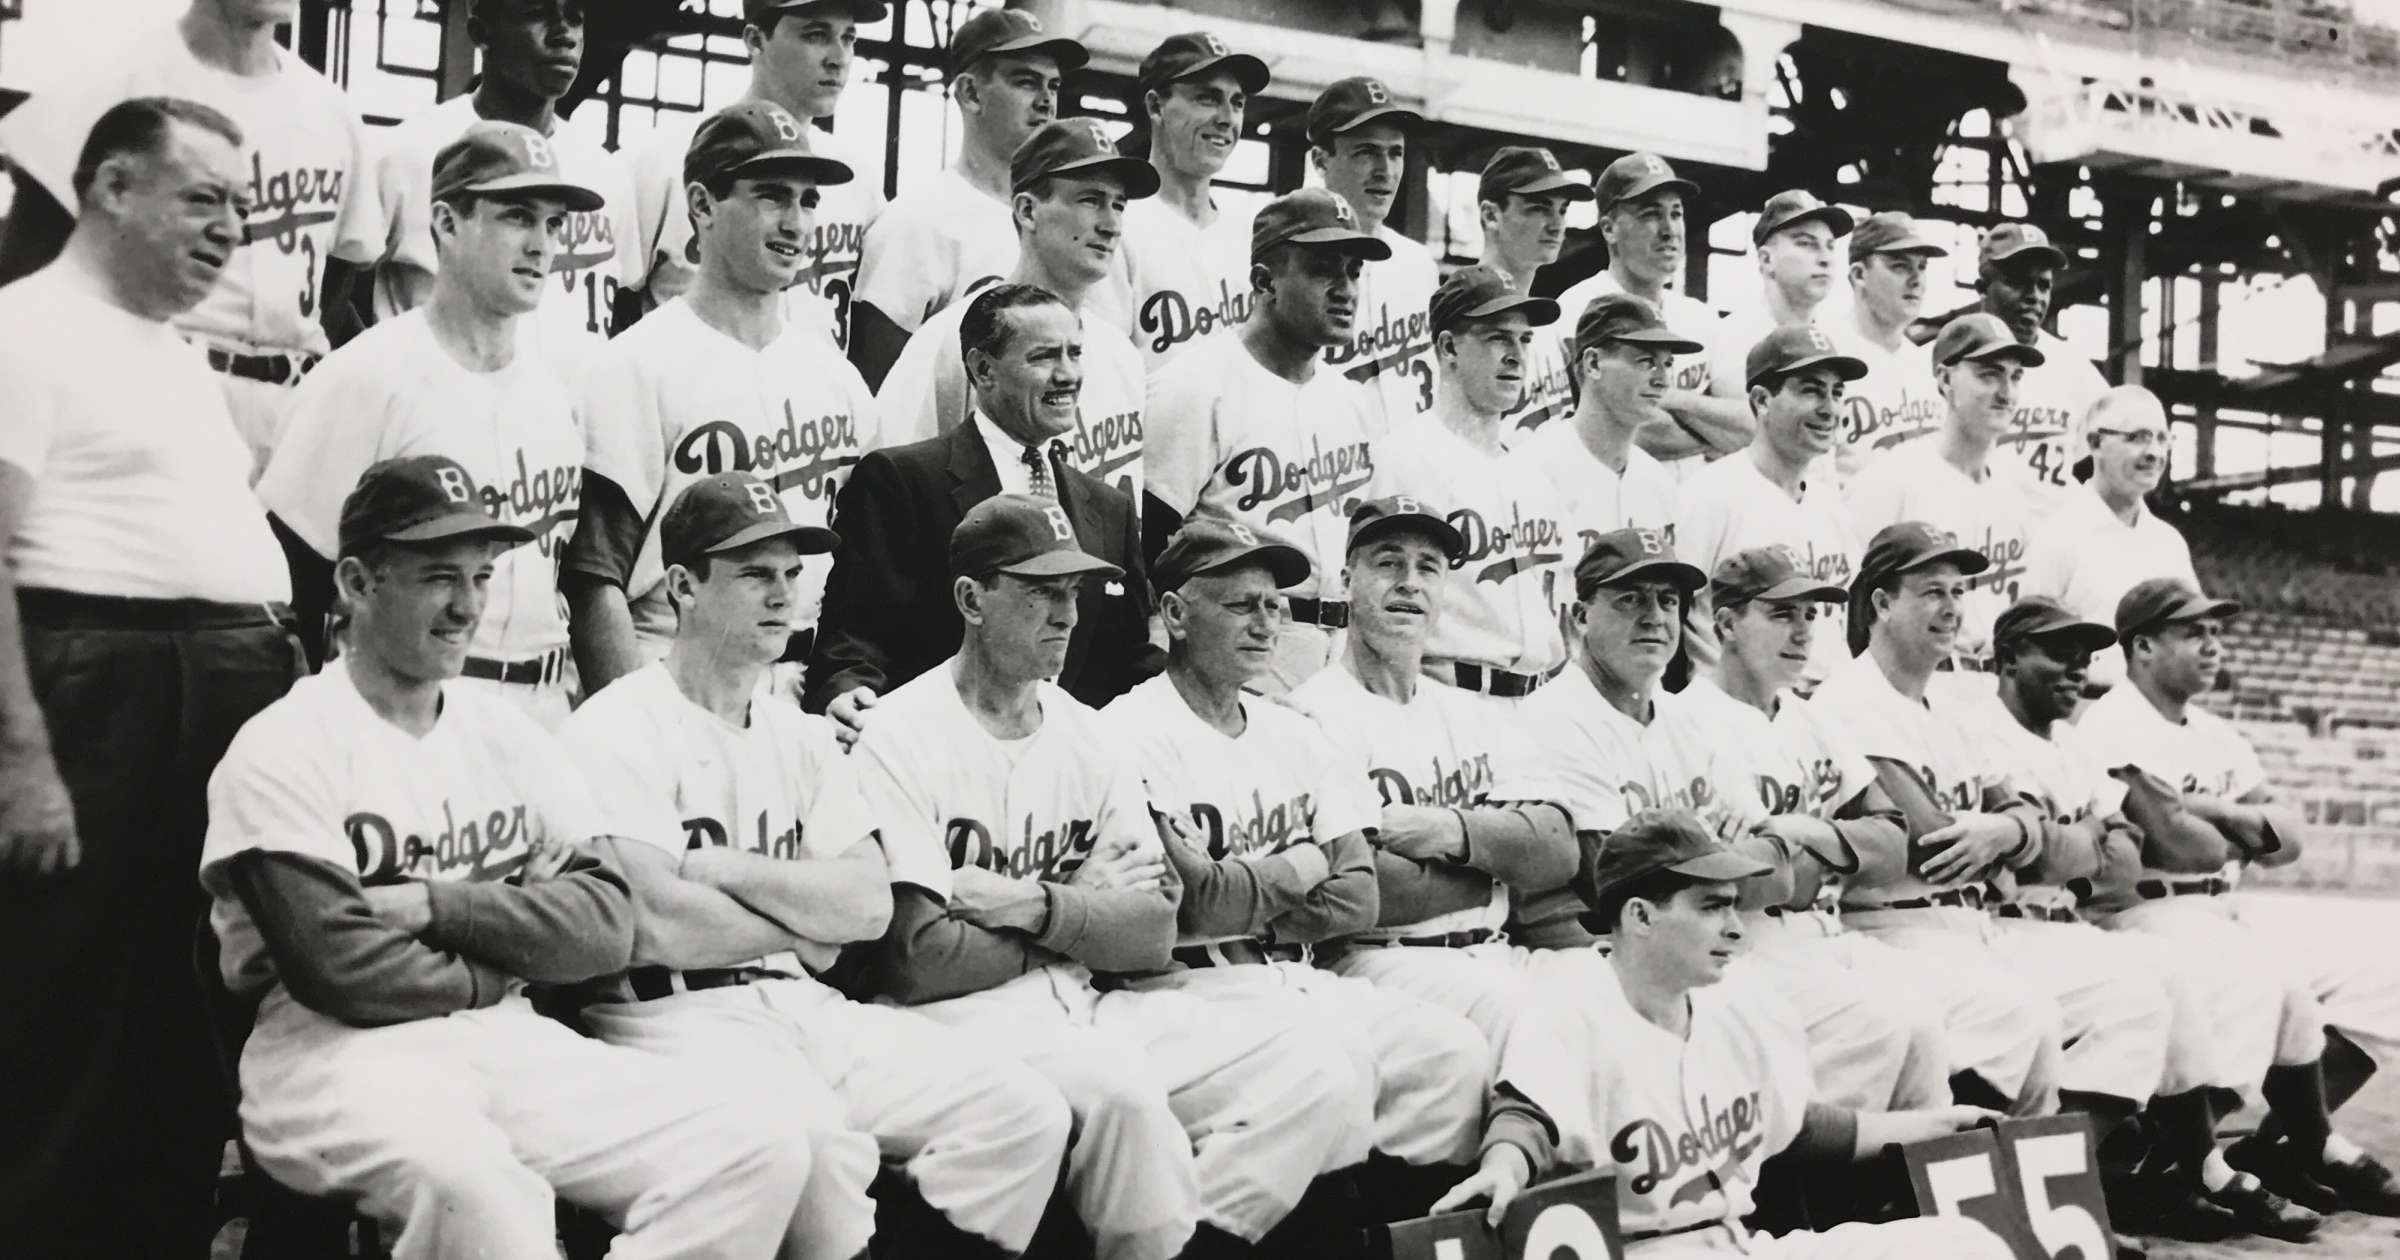 Nat Fein, Champs, Brooklyn Dodgers, The Dodgers bring the first World Title  to Brooklyn, 1955 - Artwork 15818 | Jackson Fine Art